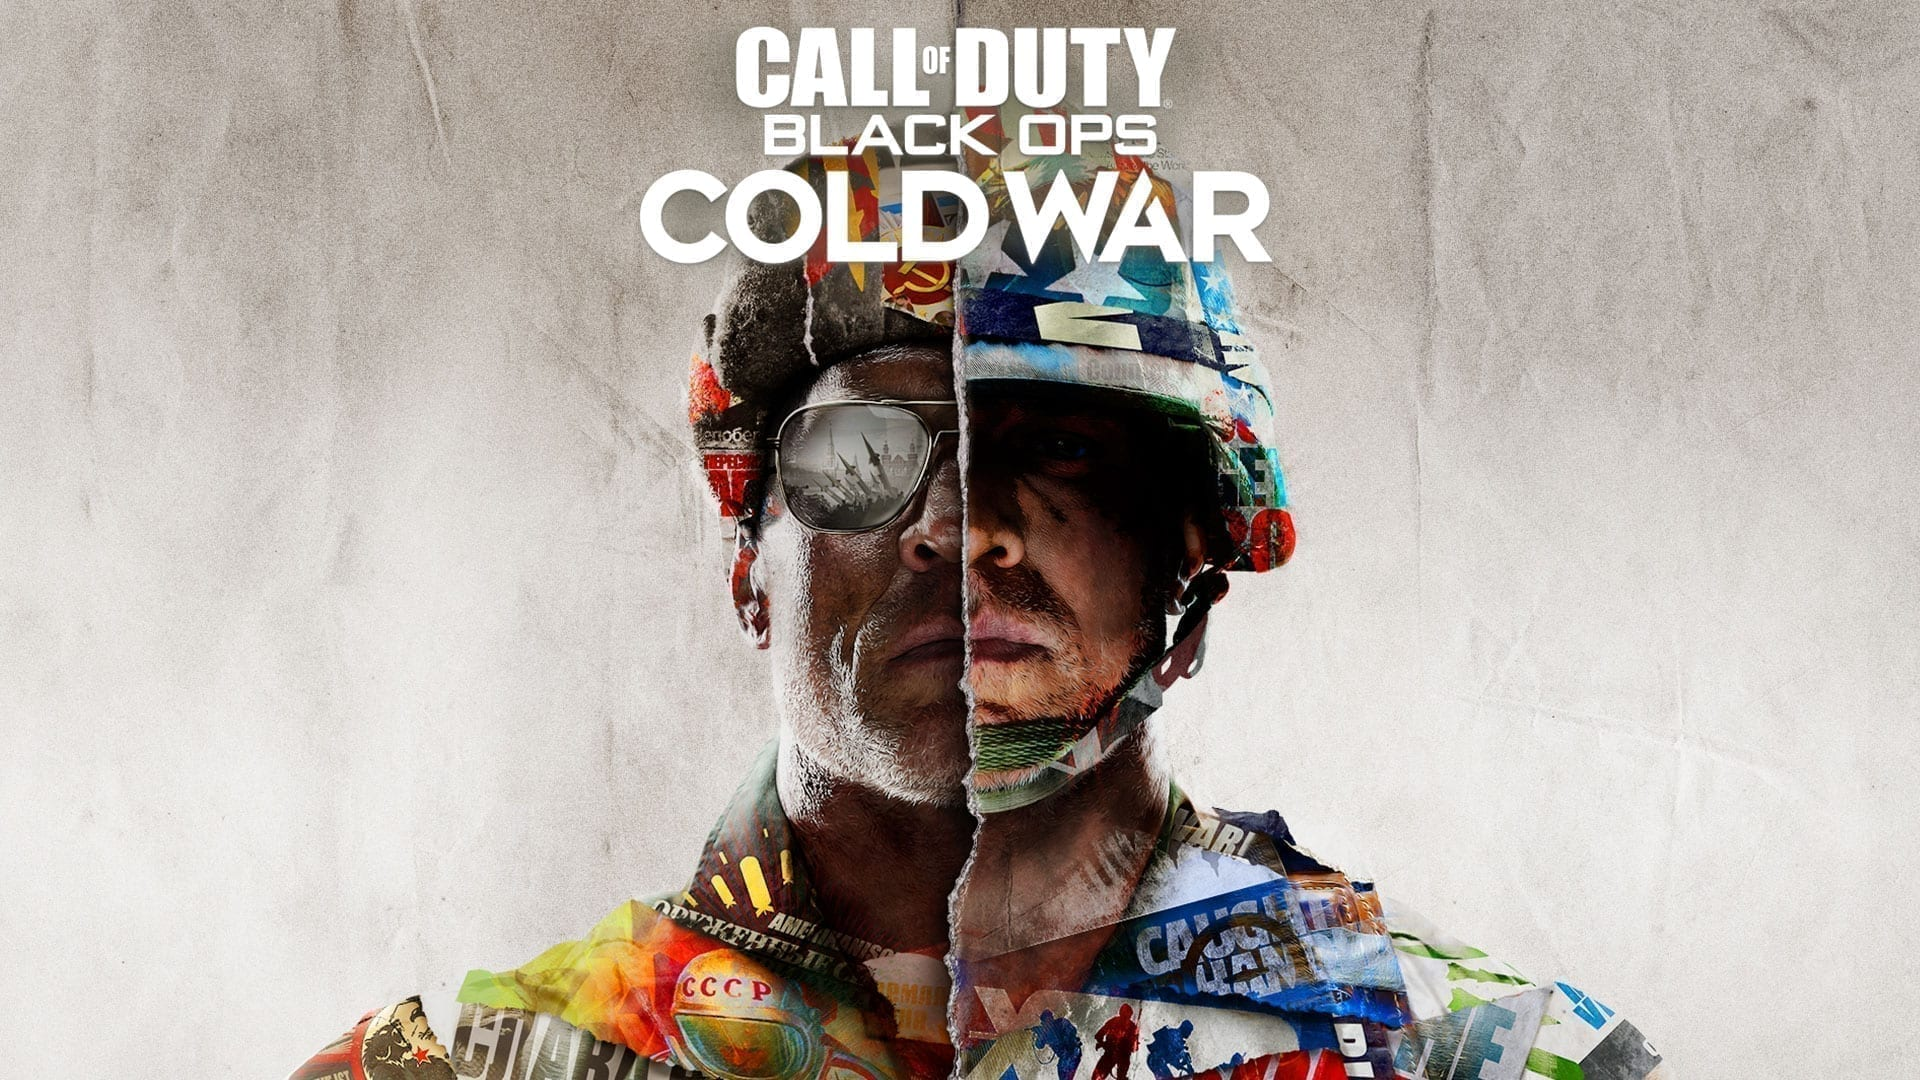 Call of Duty: Black Ops Cold War PC Trailer Details Key Game Features